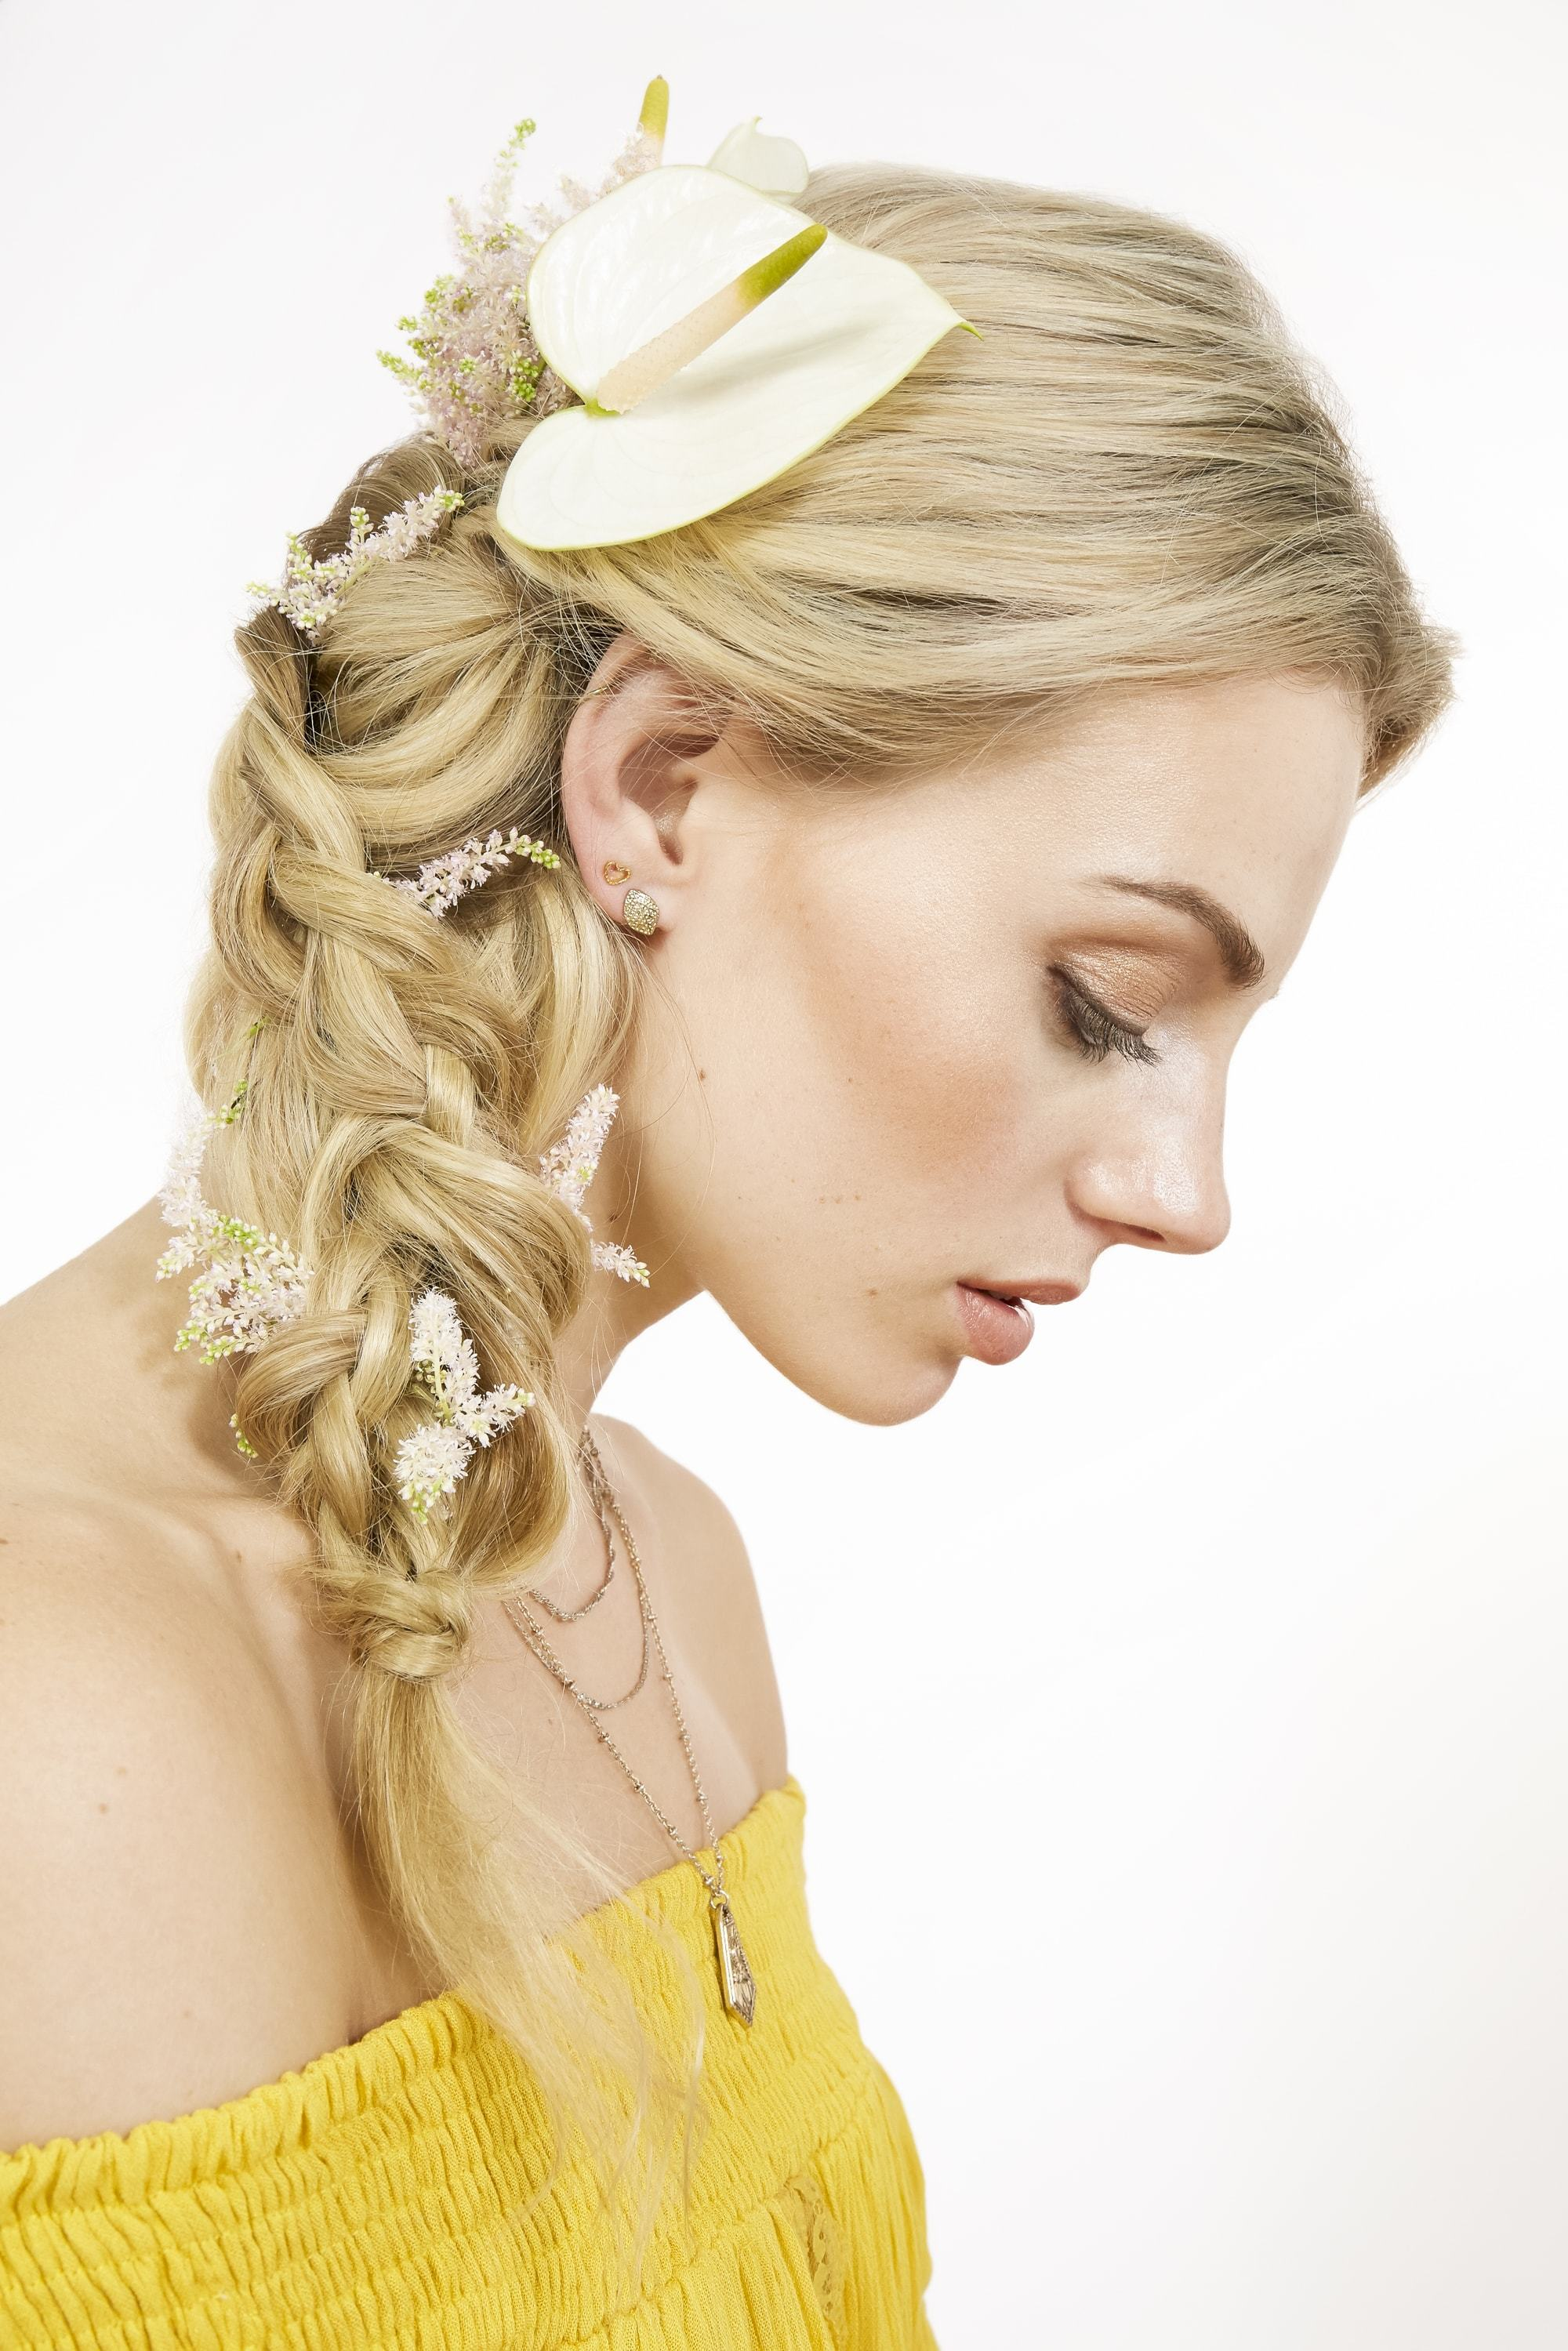 Braids for long hair: Model with blonde hair in side braid with flowers wearing a yellow summer top.